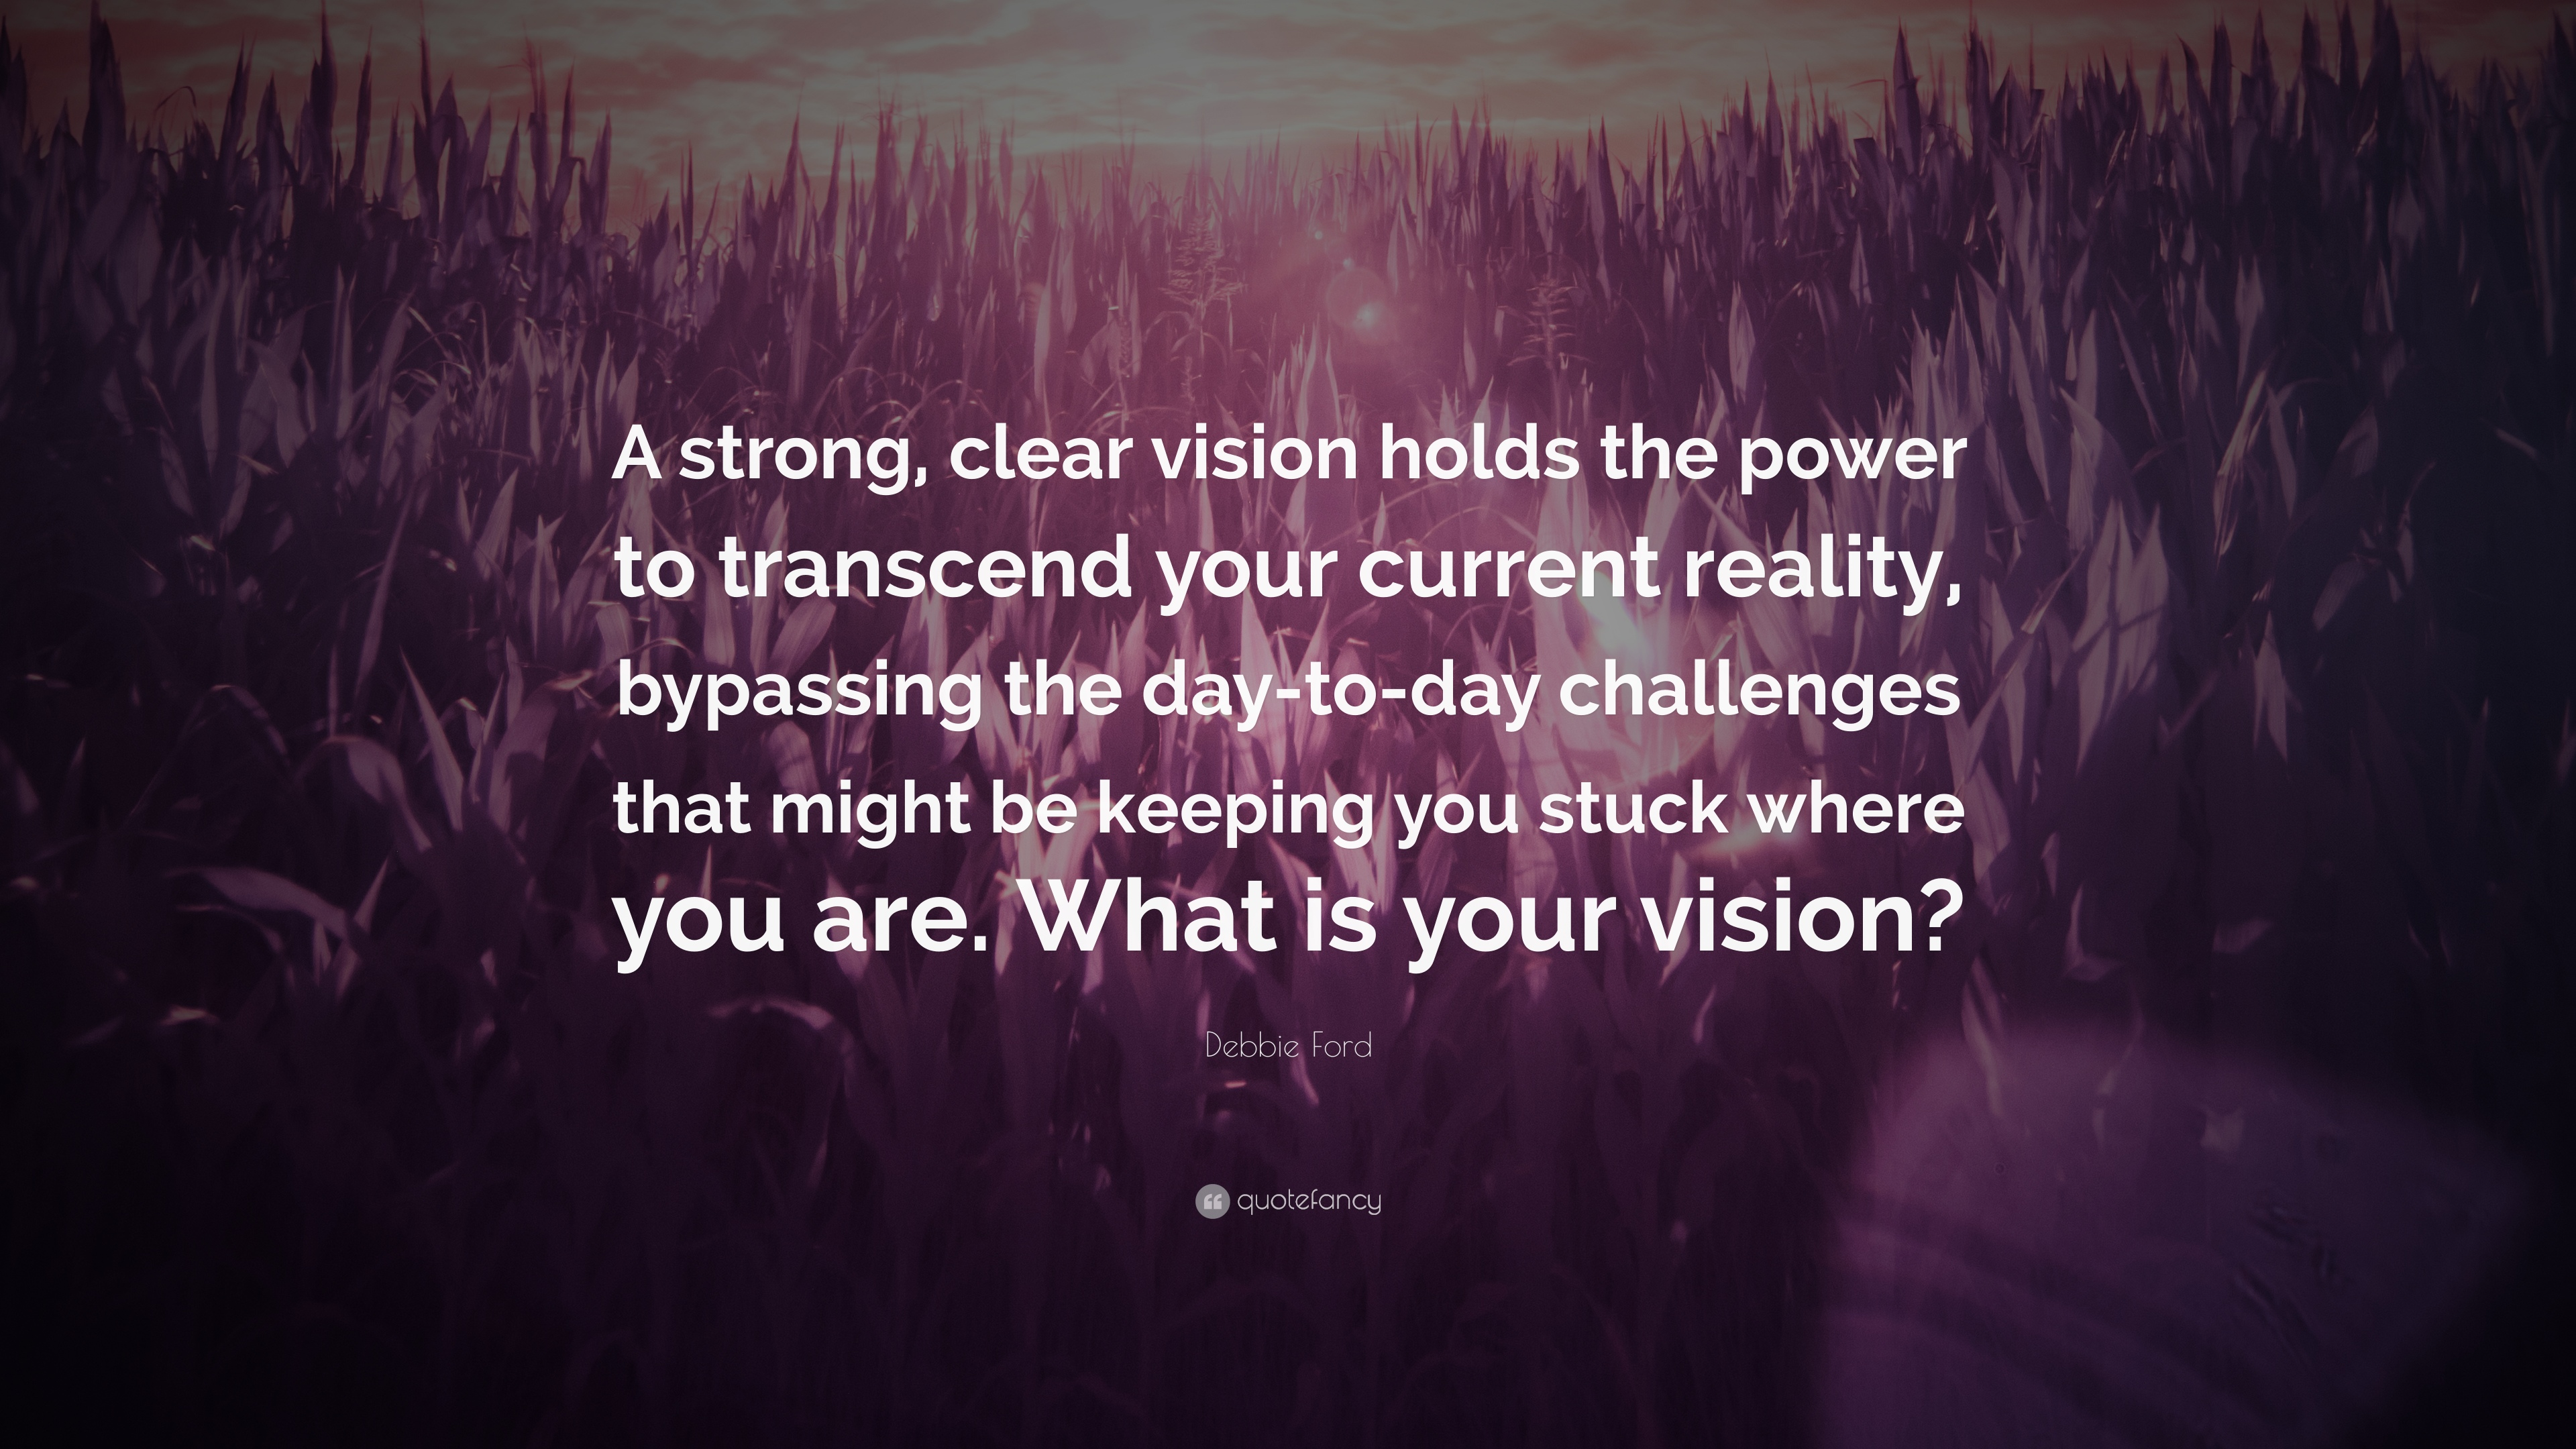 Debbie Ford Quote: U201cA Strong, Clear Vision Holds The Power To Transcend Your